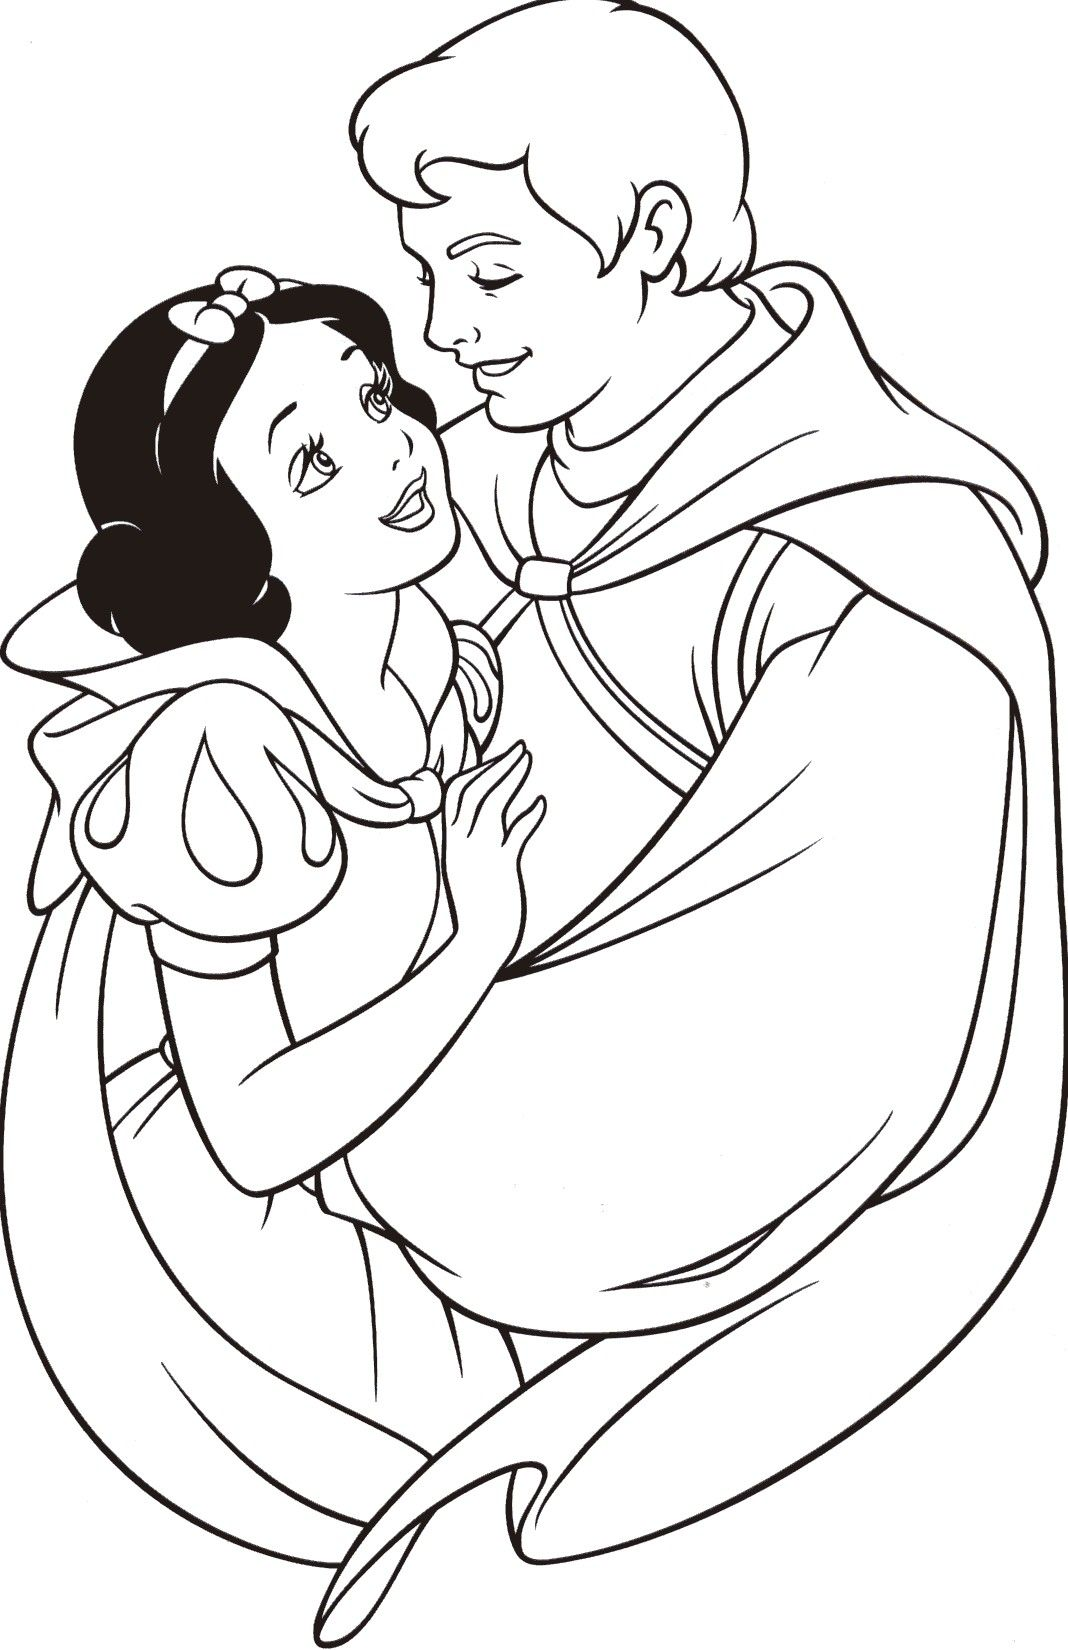 Snow & Prince Charming | Coloring Pages in 2018 | Pinterest | Snow ...